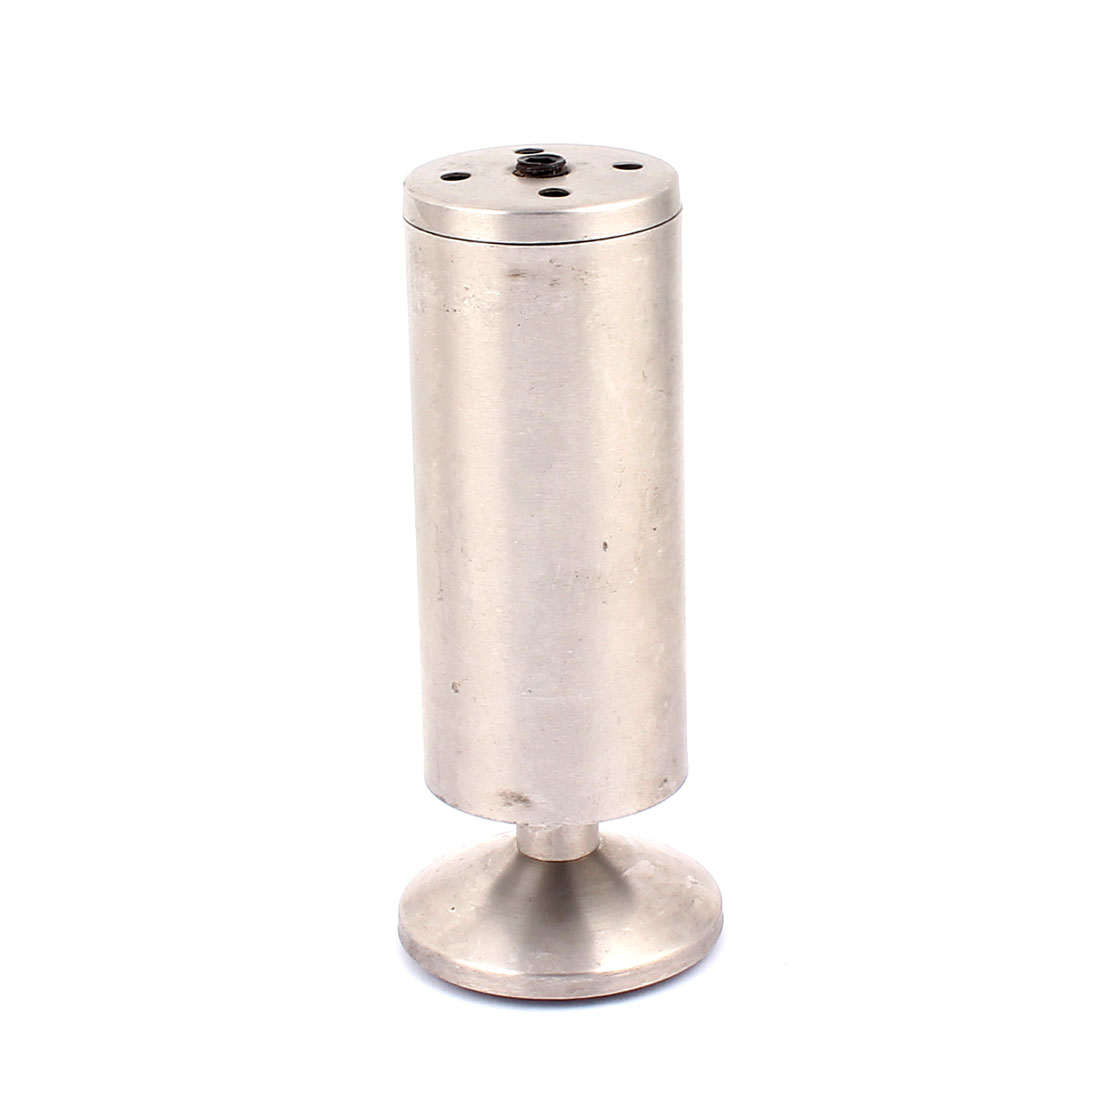 Stainless Steel Round Stand Adjustable Furniture Sofa Bed Cabinet Leg Support 50mm x 150mm